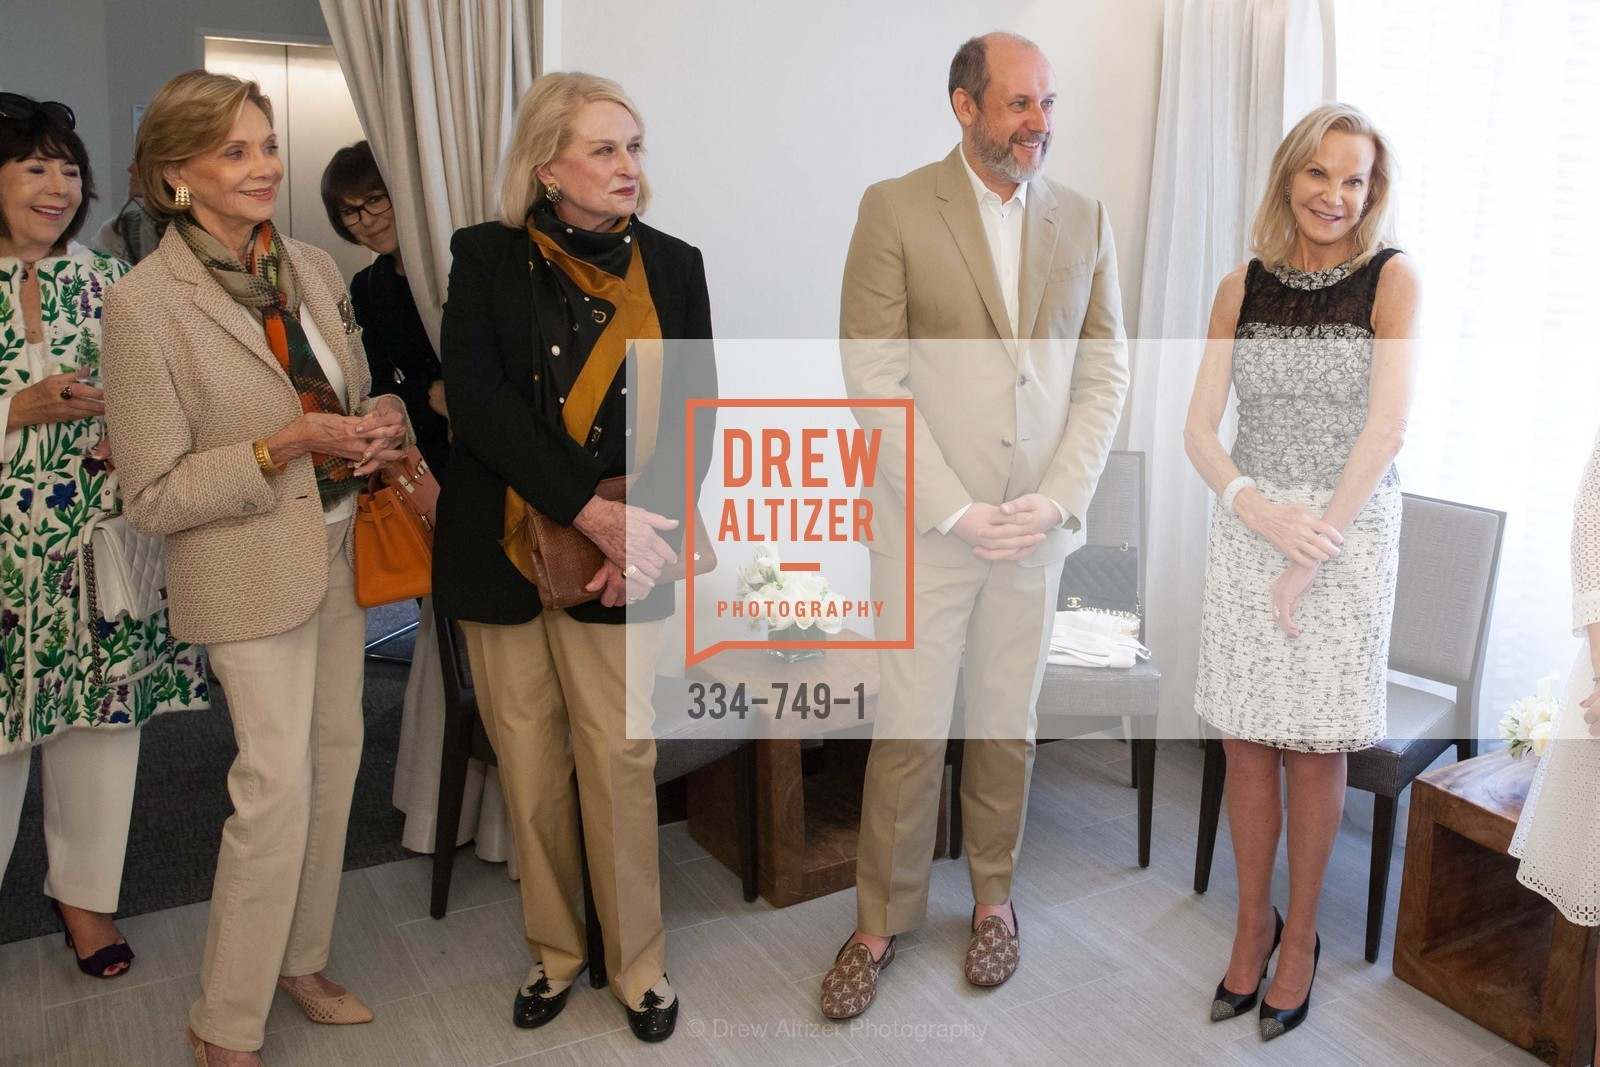 Sally Debenham, Peter Copping, Carole McNeil, PETER COPPING Meets and Greets OSCAR DELA RENTA Clients and Associates at NEIMAN MARCUS, US, May 23rd, 2015,Drew Altizer, Drew Altizer Photography, full-service agency, private events, San Francisco photographer, photographer california